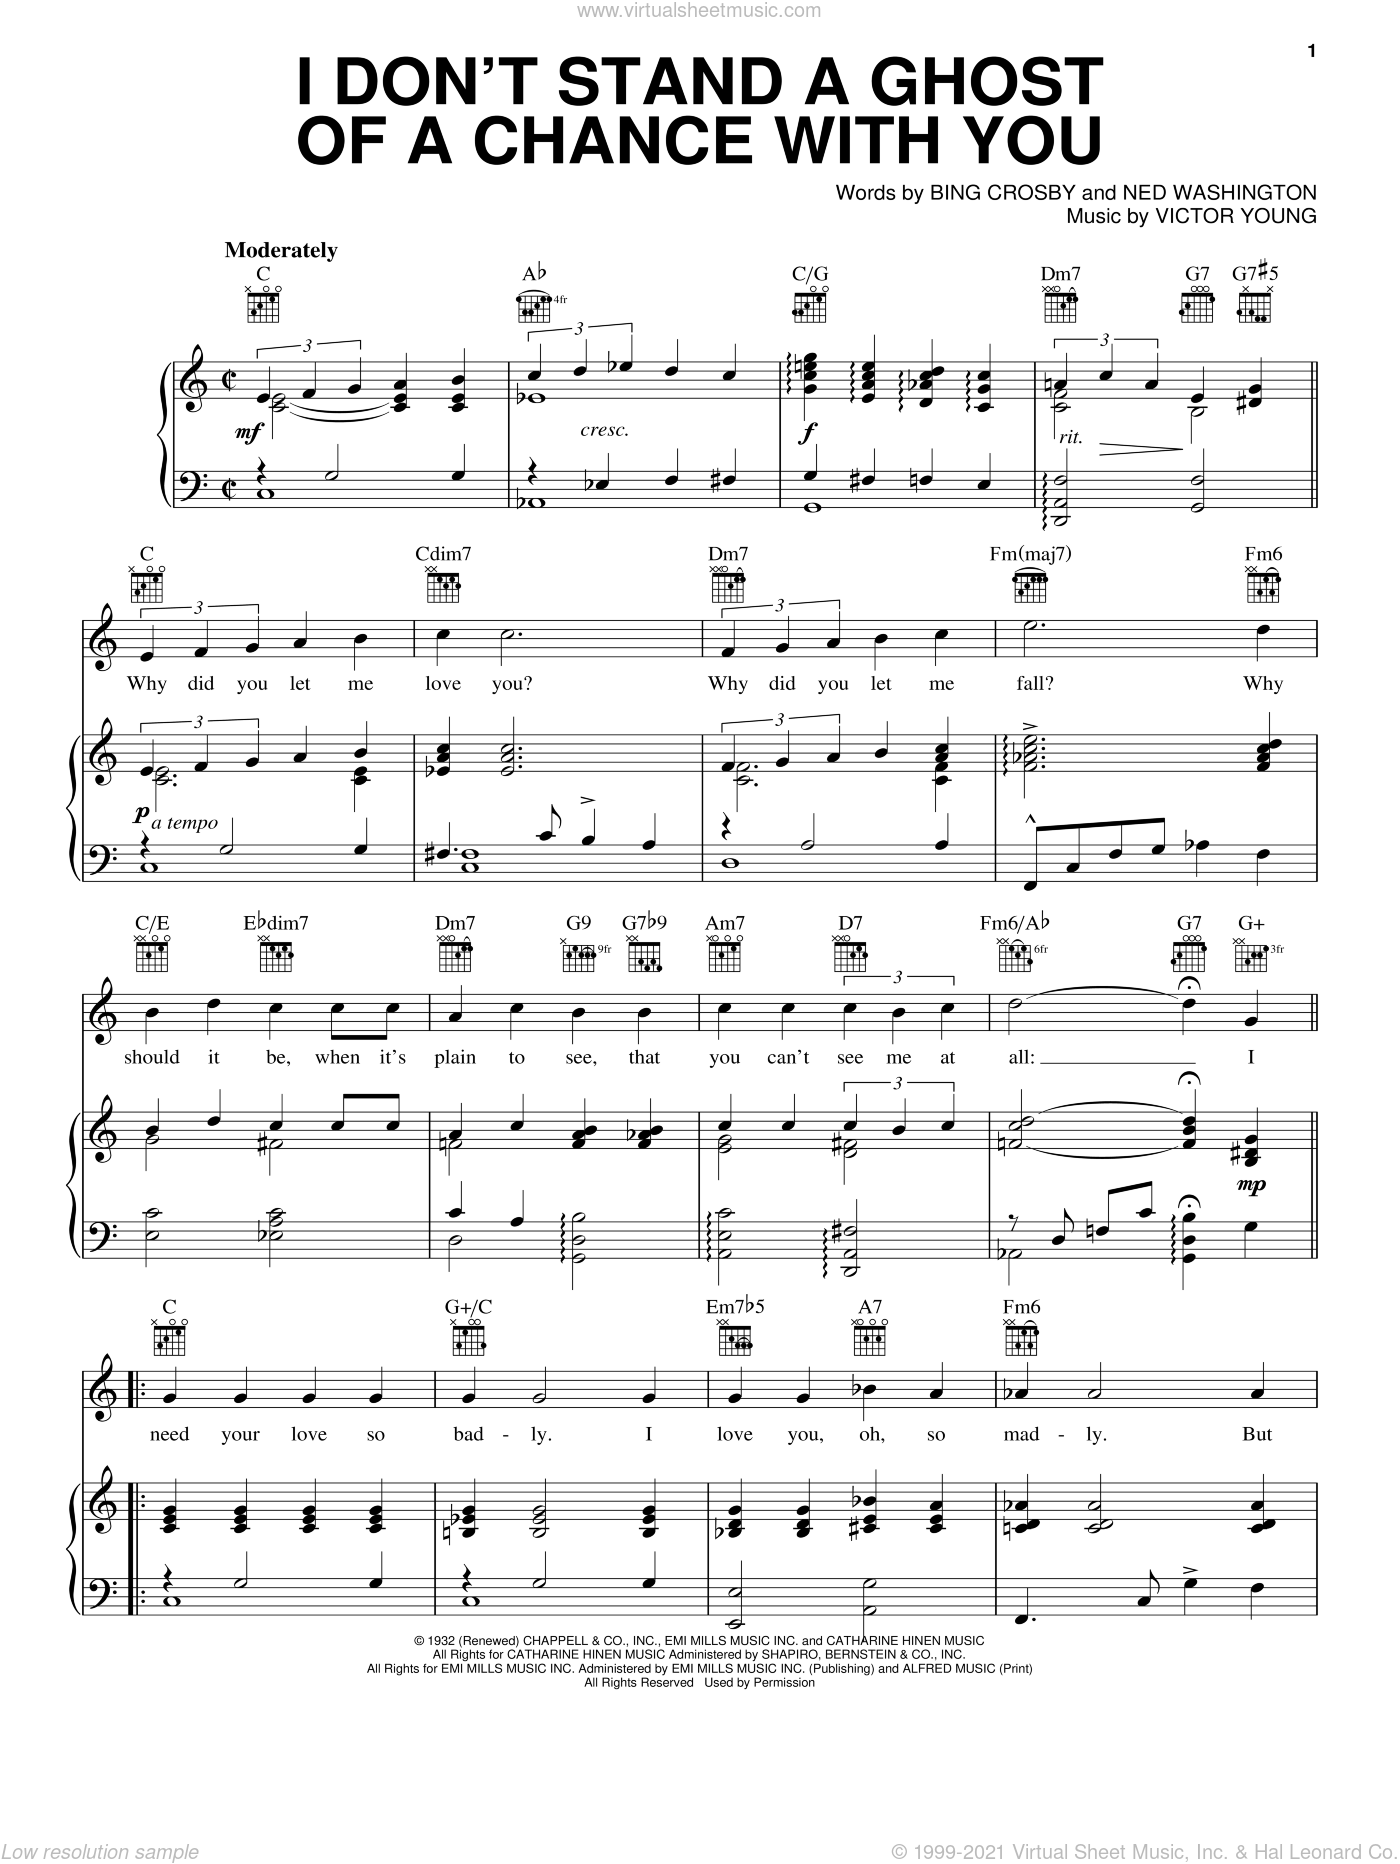 I Don't Stand A Ghost Of A Chance sheet music for voice, piano or guitar by Bing Crosby, Ned Washington and Victor Young, intermediate skill level